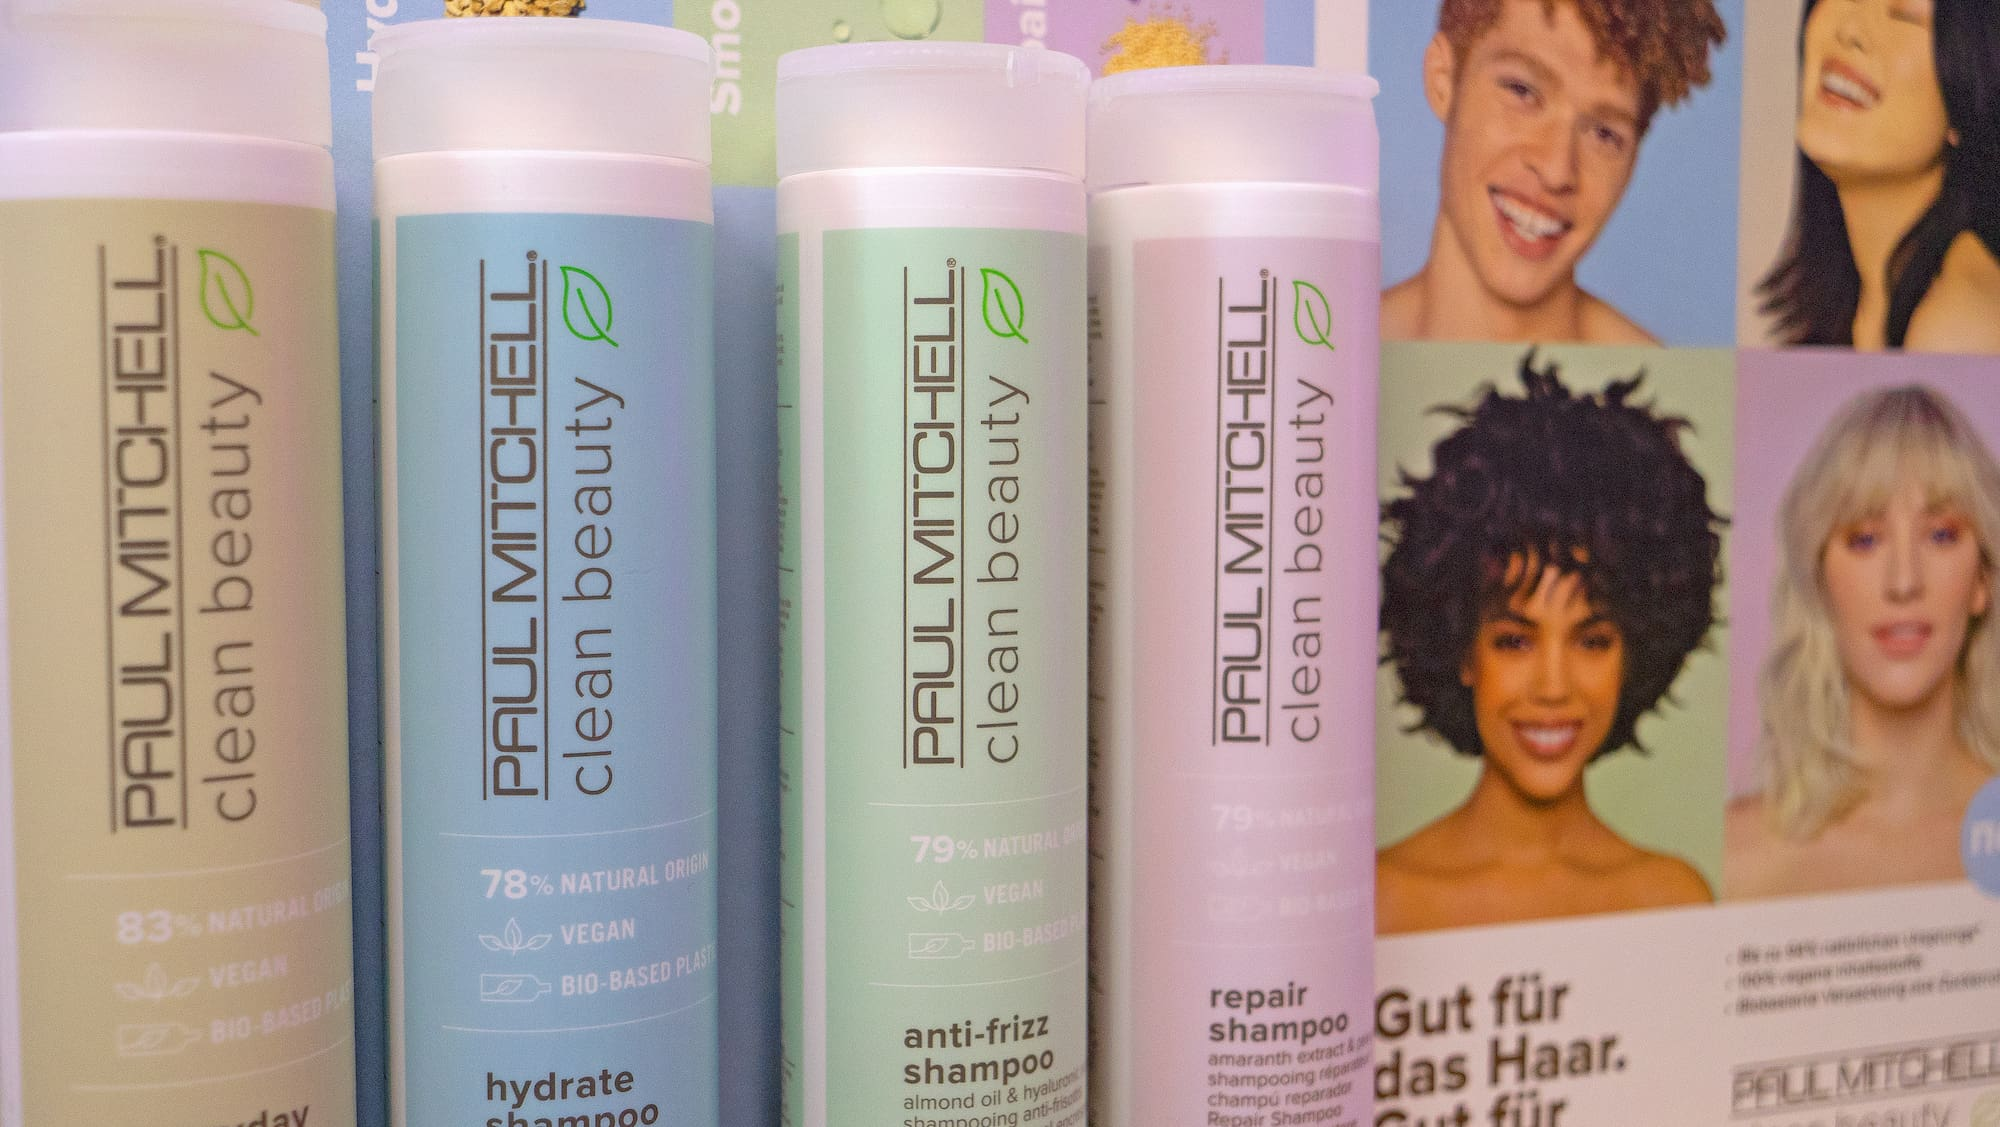 Paul Mitchell Haarpflege-Produkt Serie clean beauty Shampoo